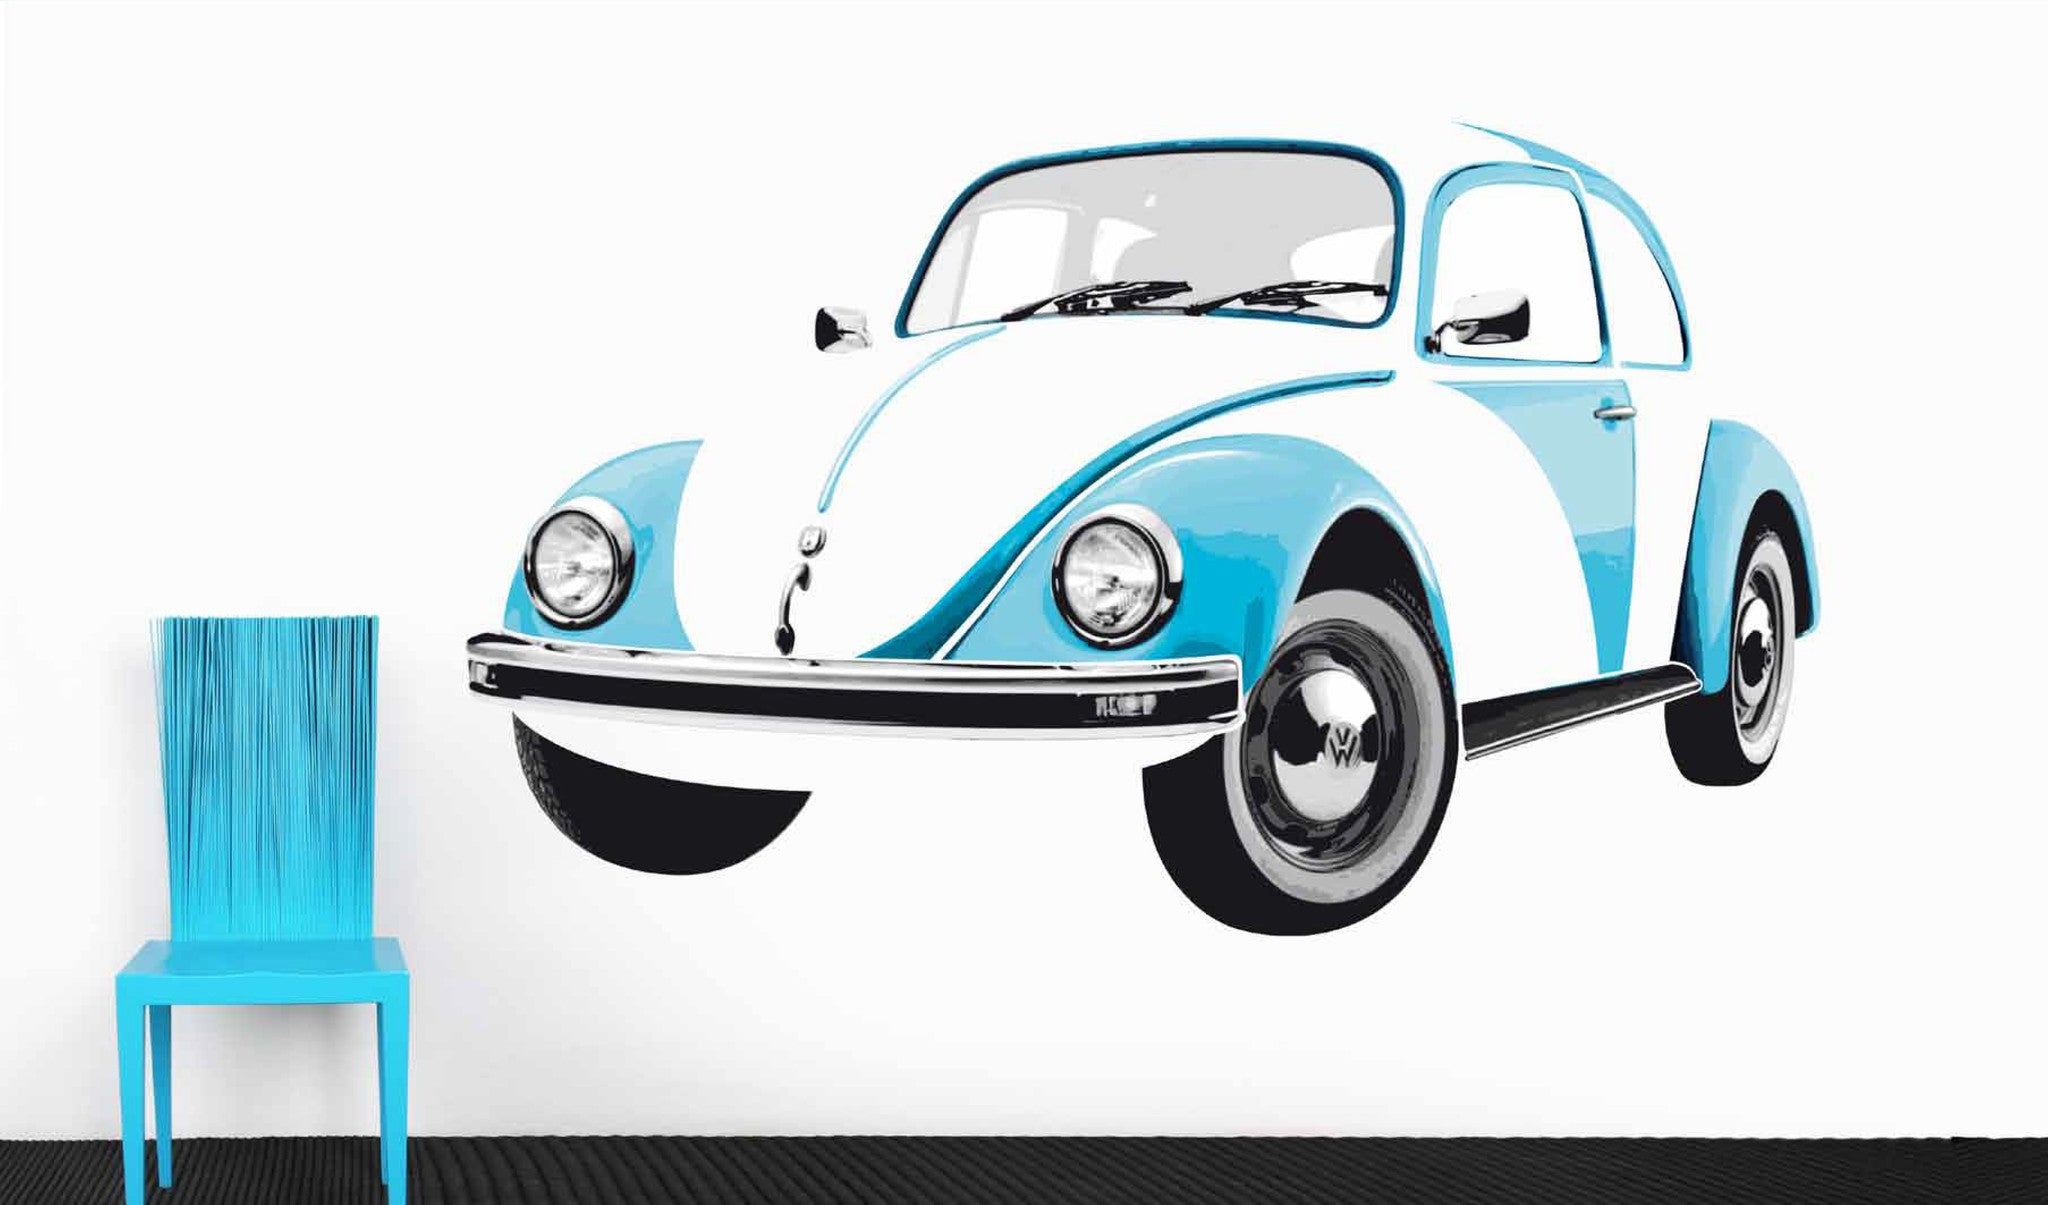 Vw collection wall decal blue beetle bewt01 brisa cool vw stuff